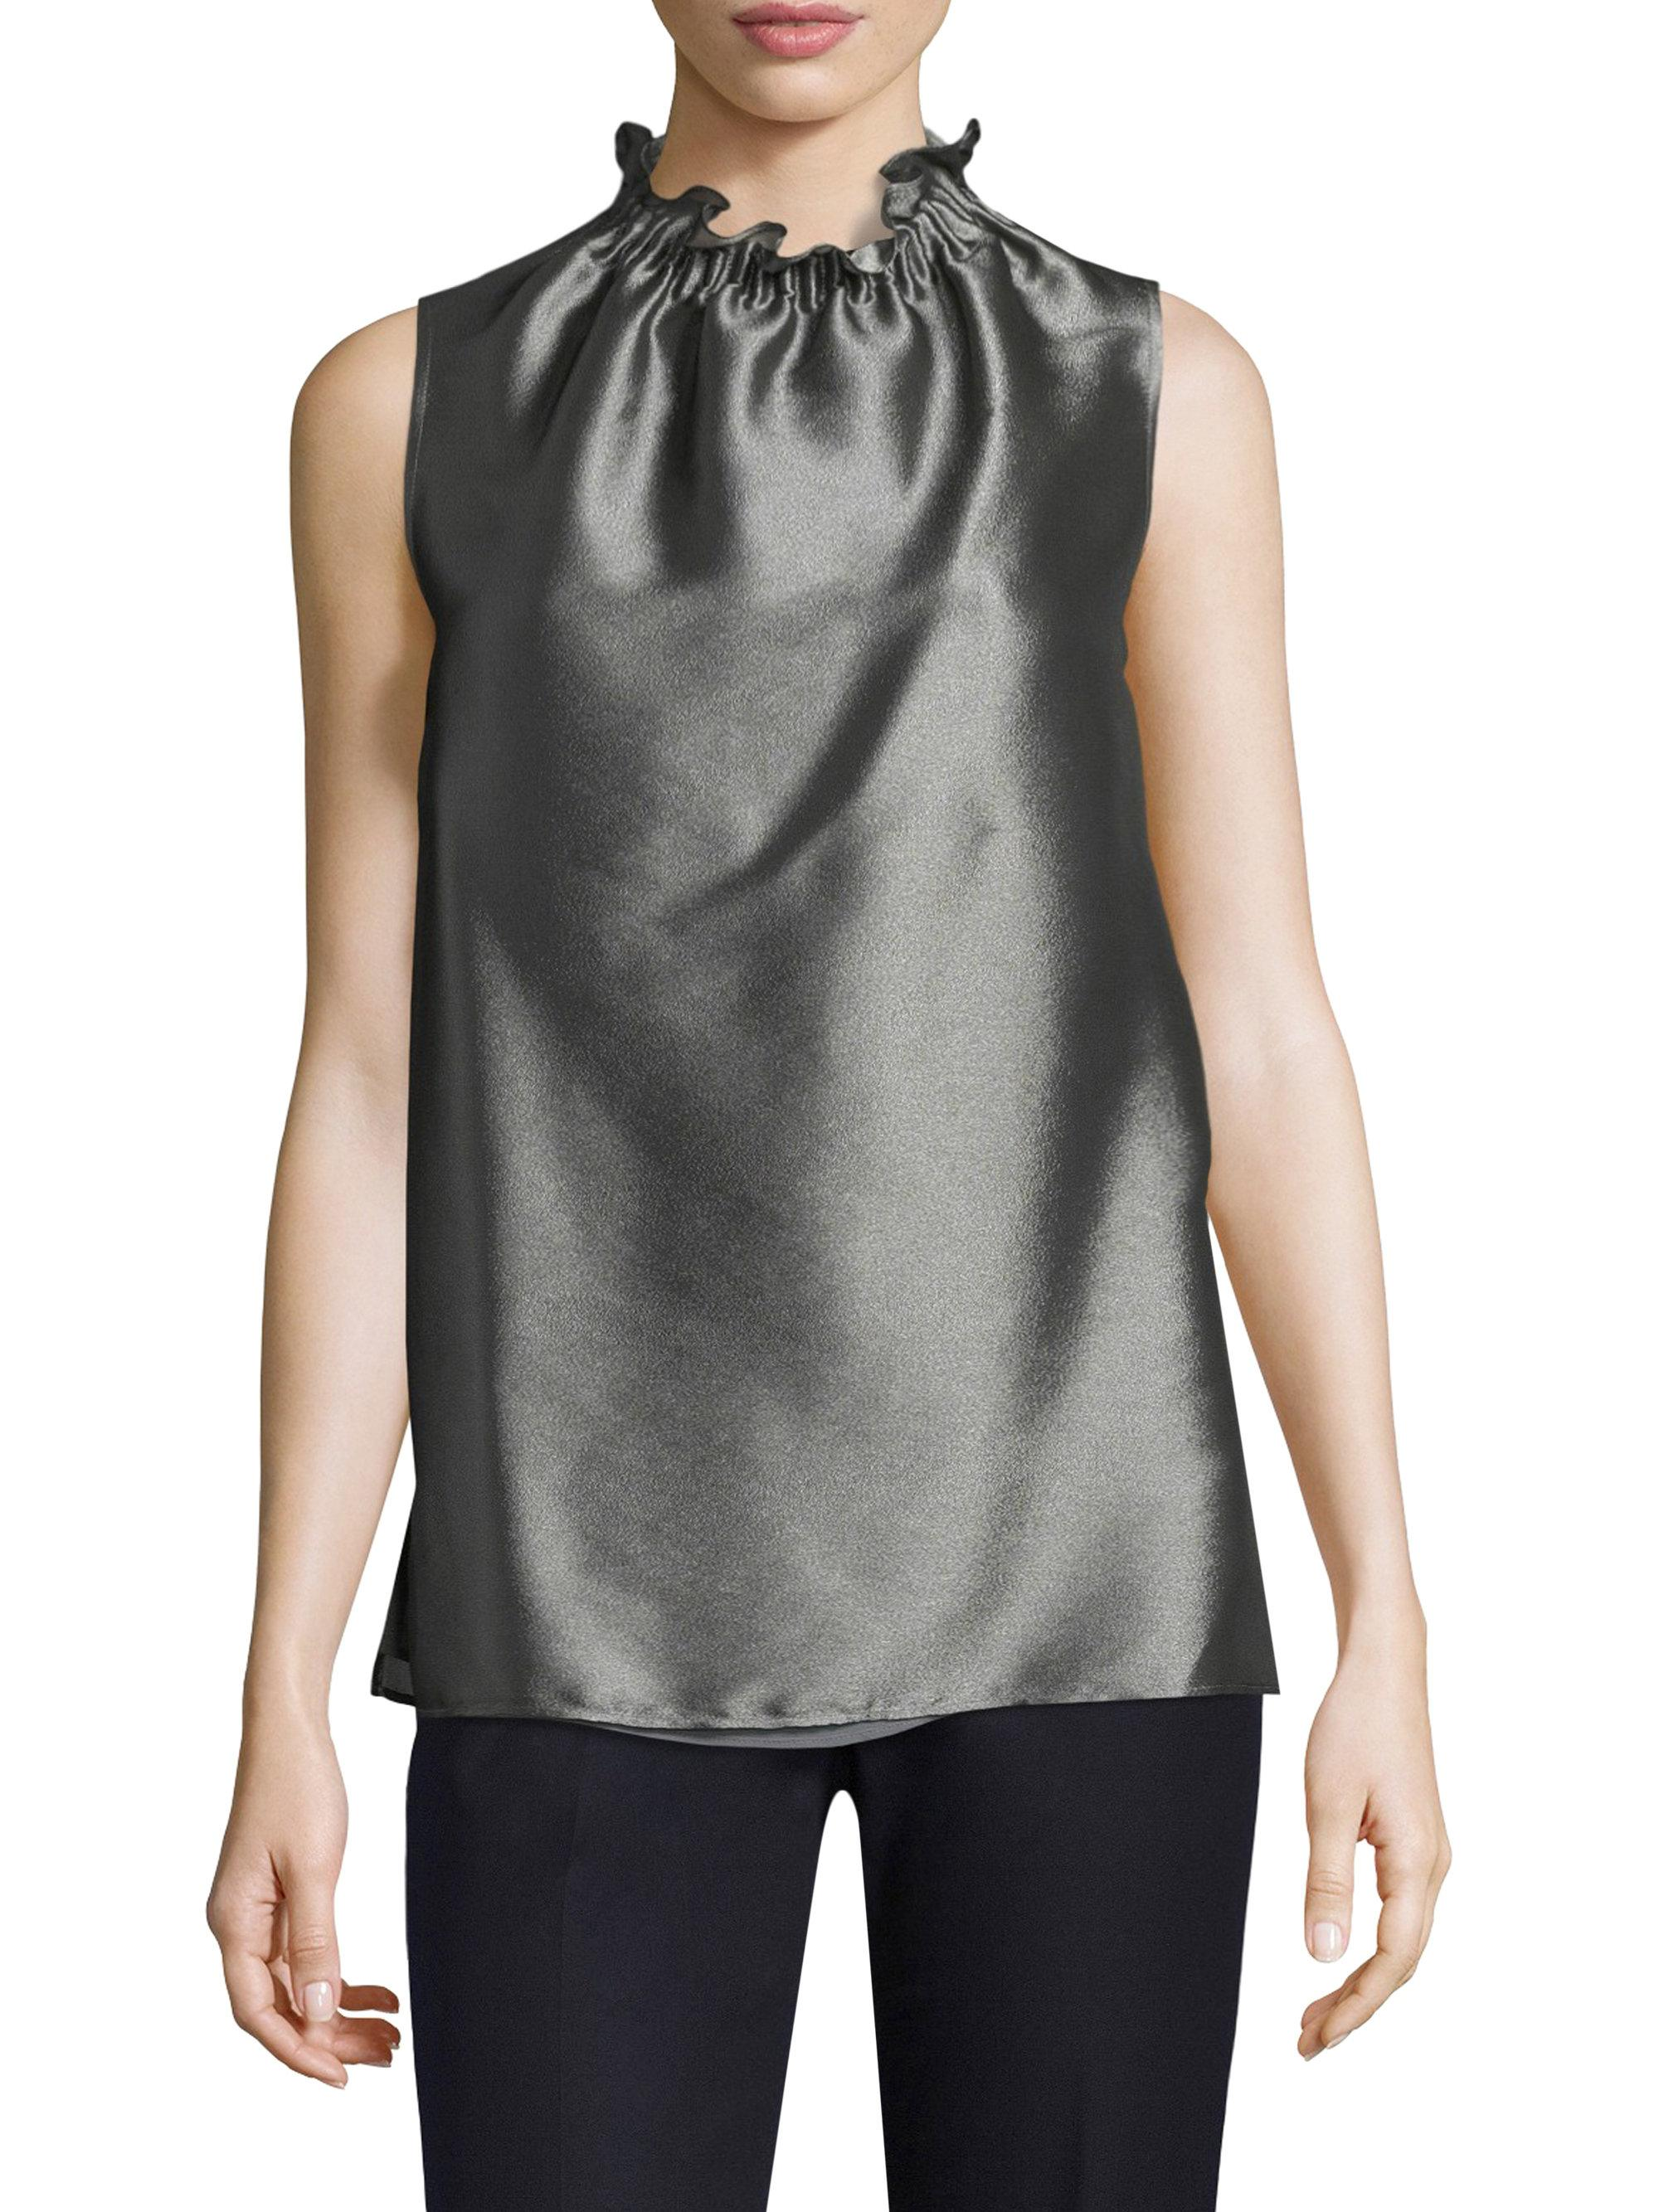 148 Best Images About Craft Ideas For Girls On Pinterest: Lafayette 148 New York Percy Sleeveless Top In Black